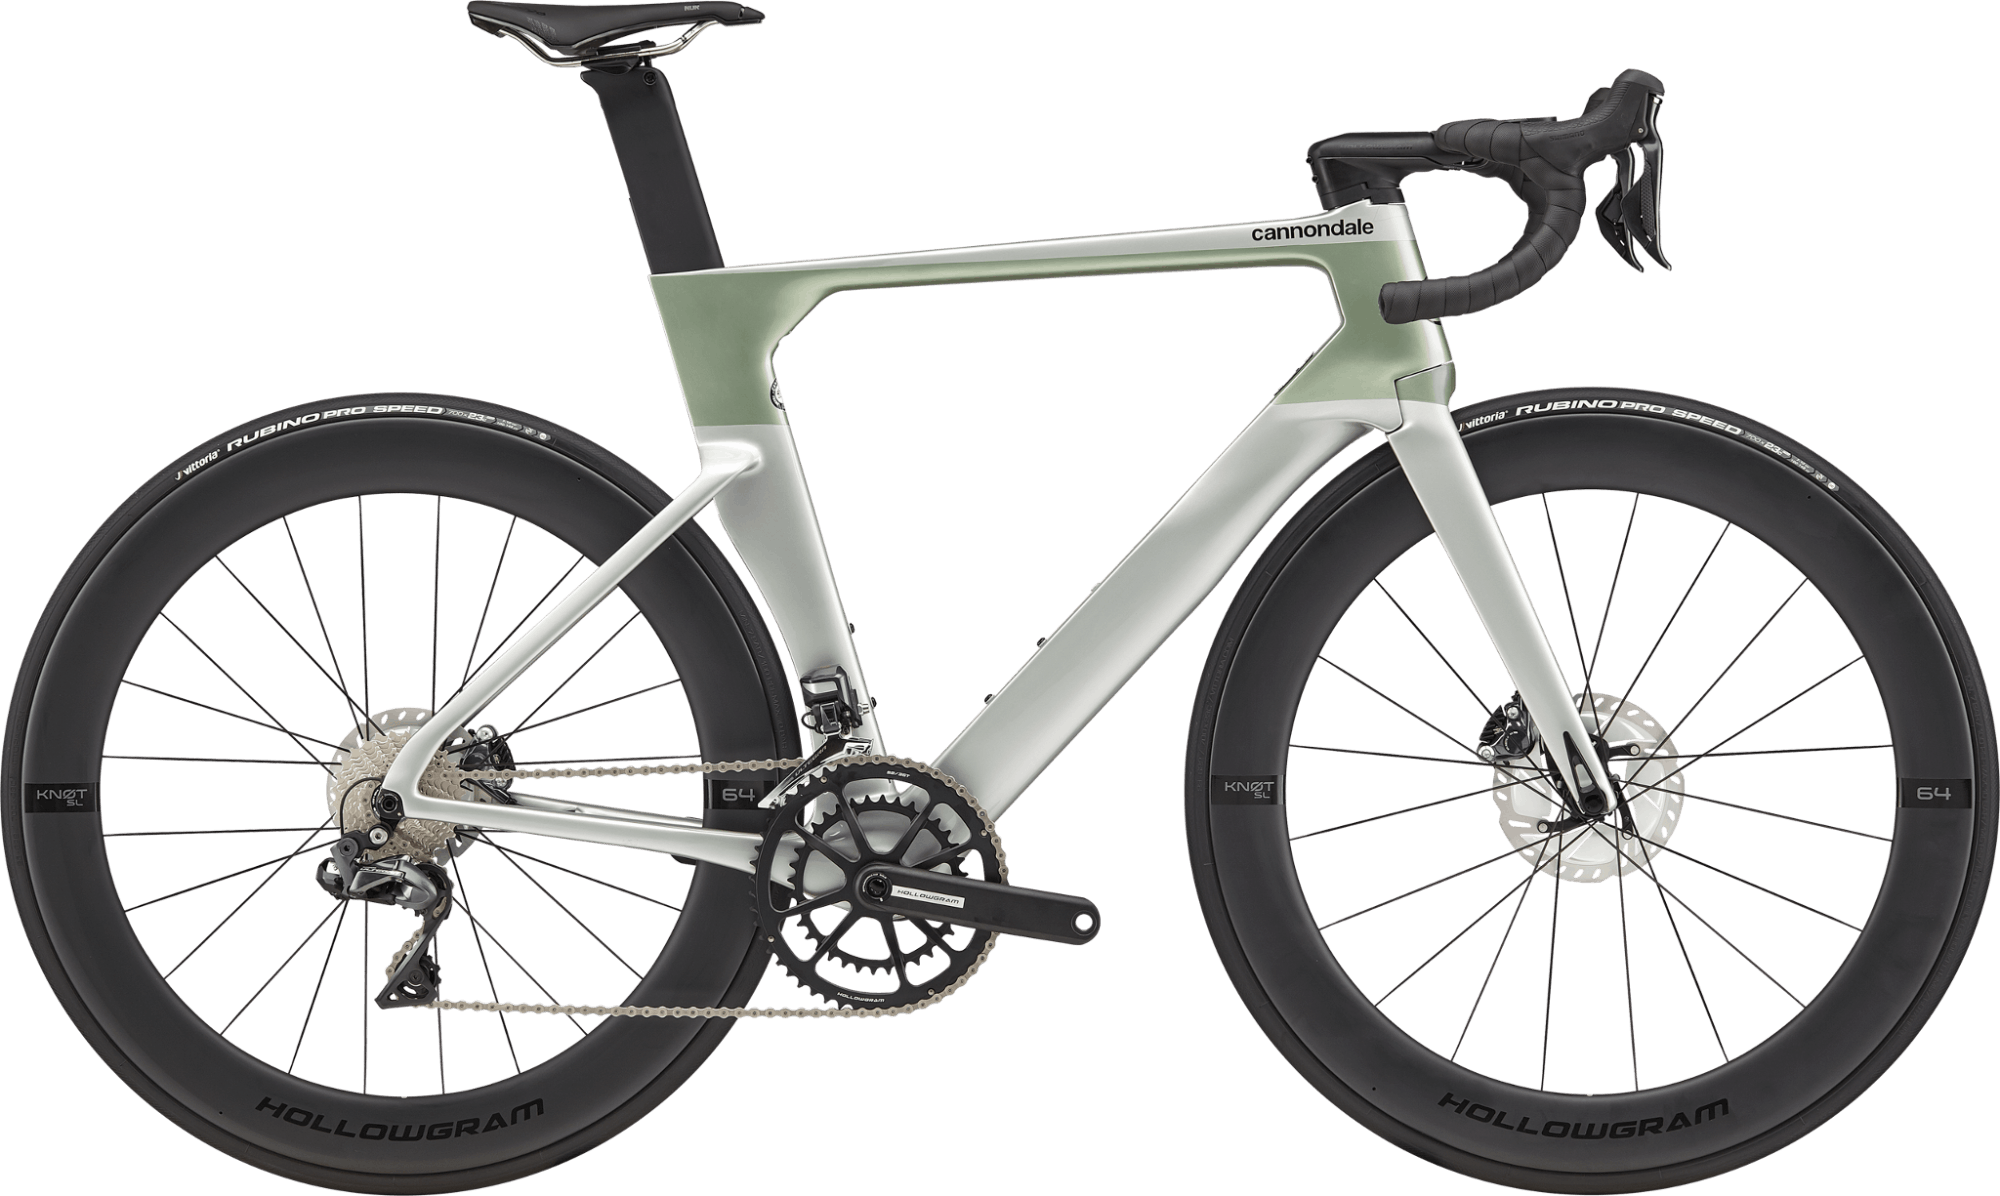 Cannondale 700 M SystemSix Crb Ult Di2 Road Bike · 2020